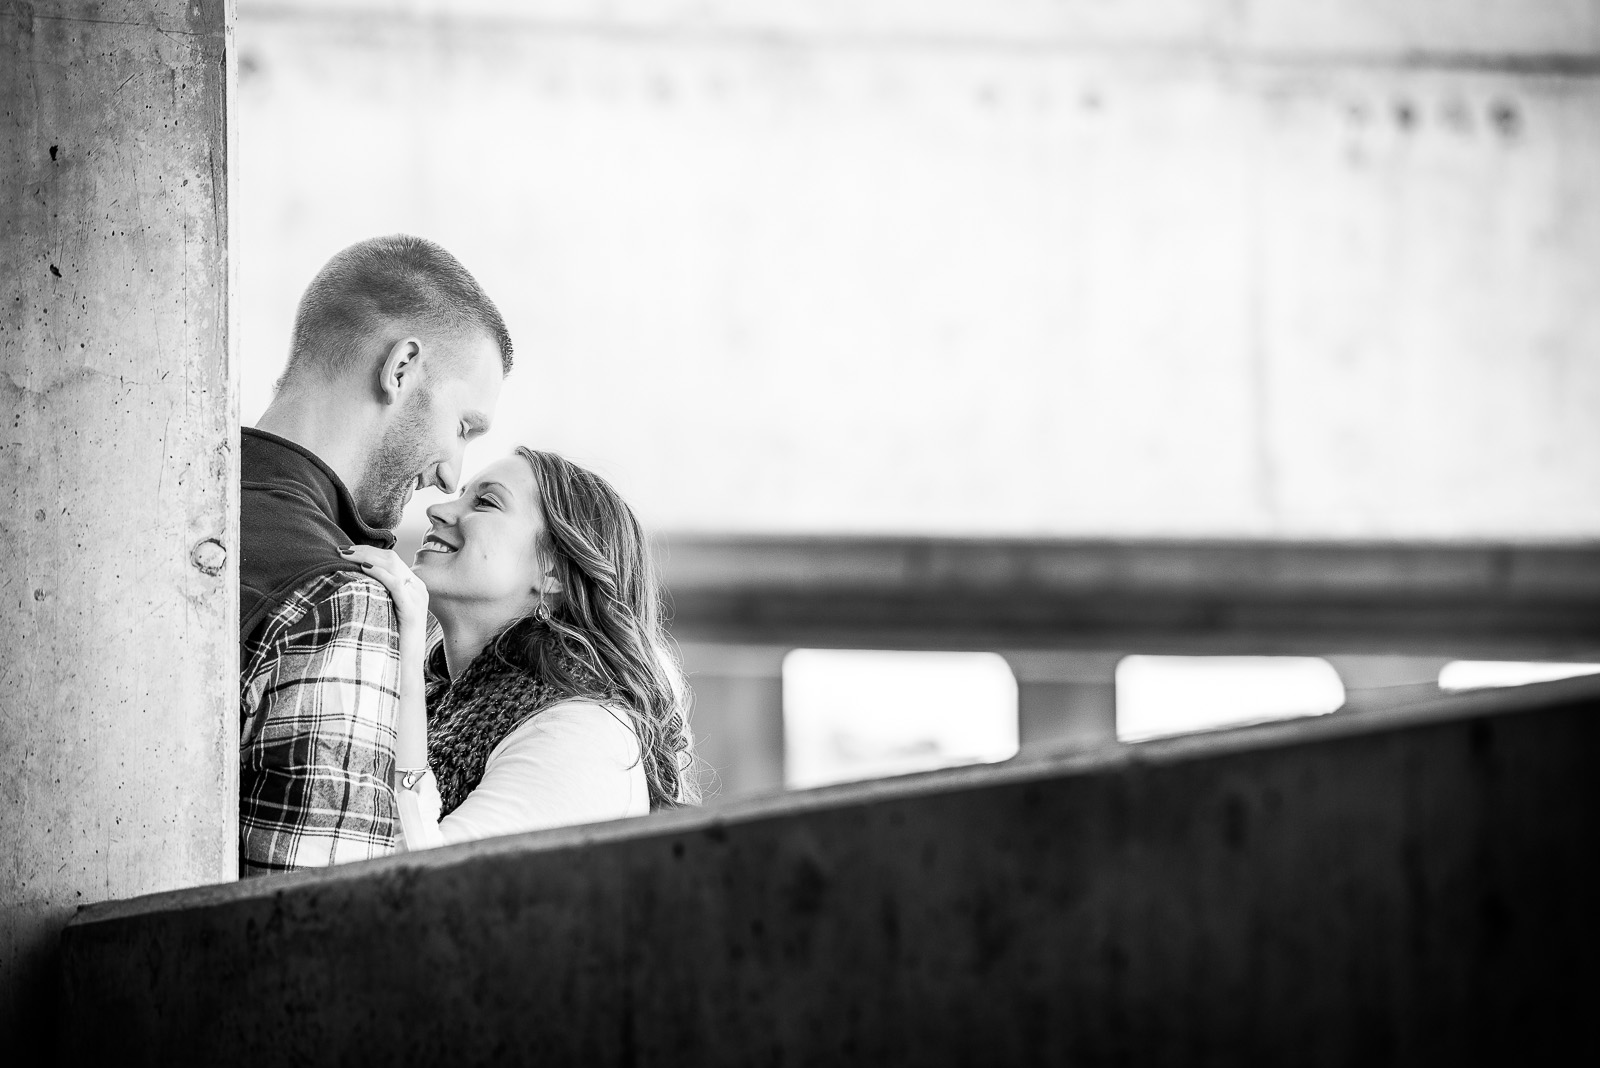 eric_and_christy_photographers_blog_ashleystorm-2